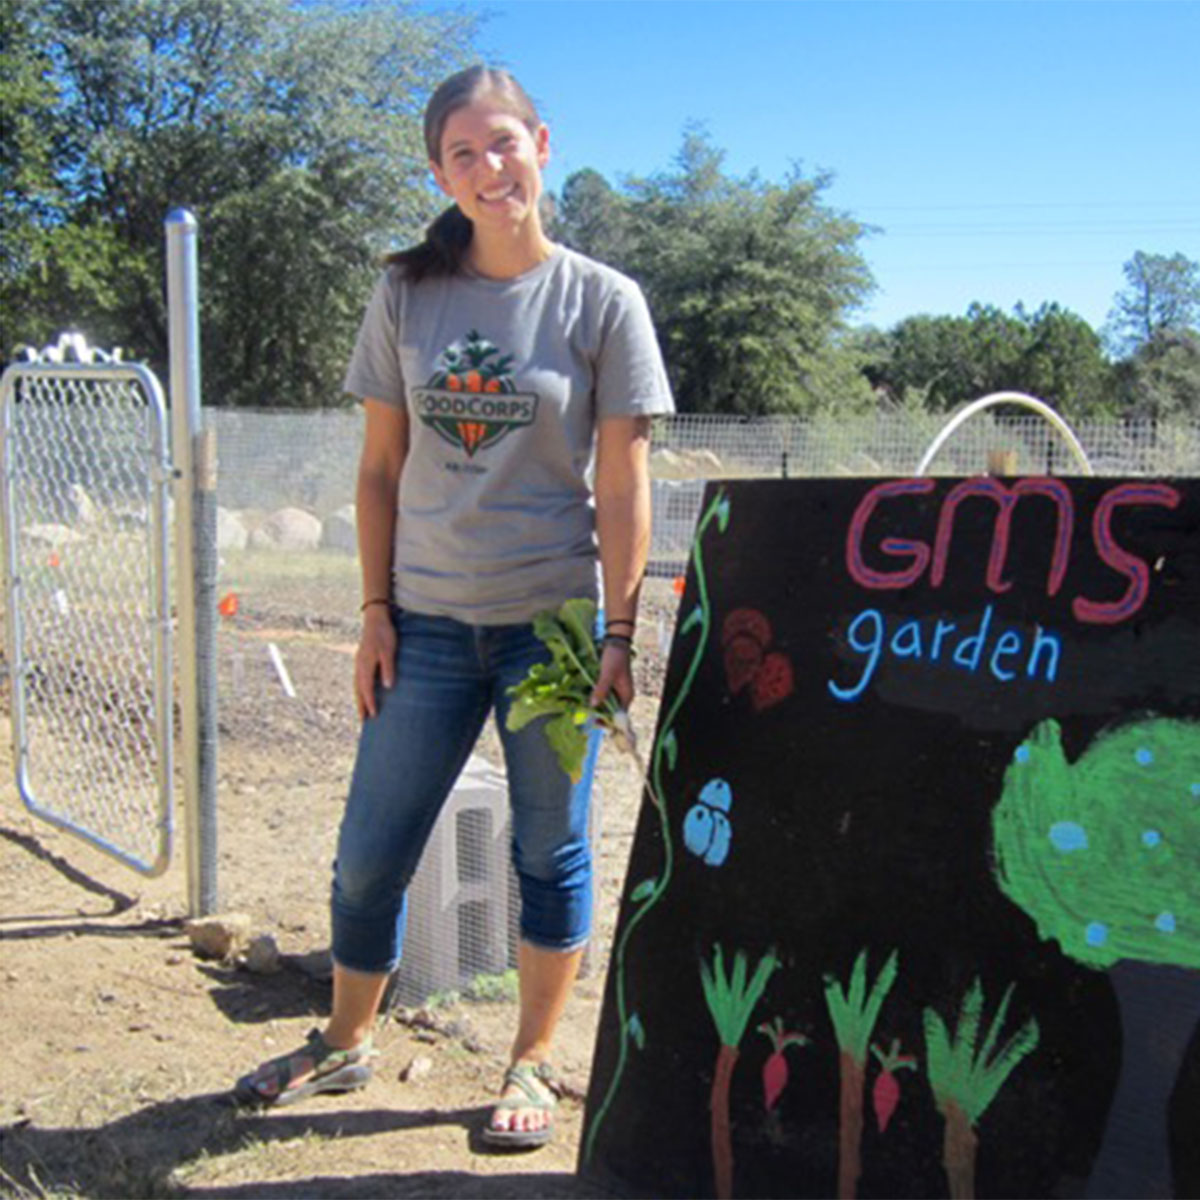 FoodCorps Connects Kids to Healthy Food in Schools